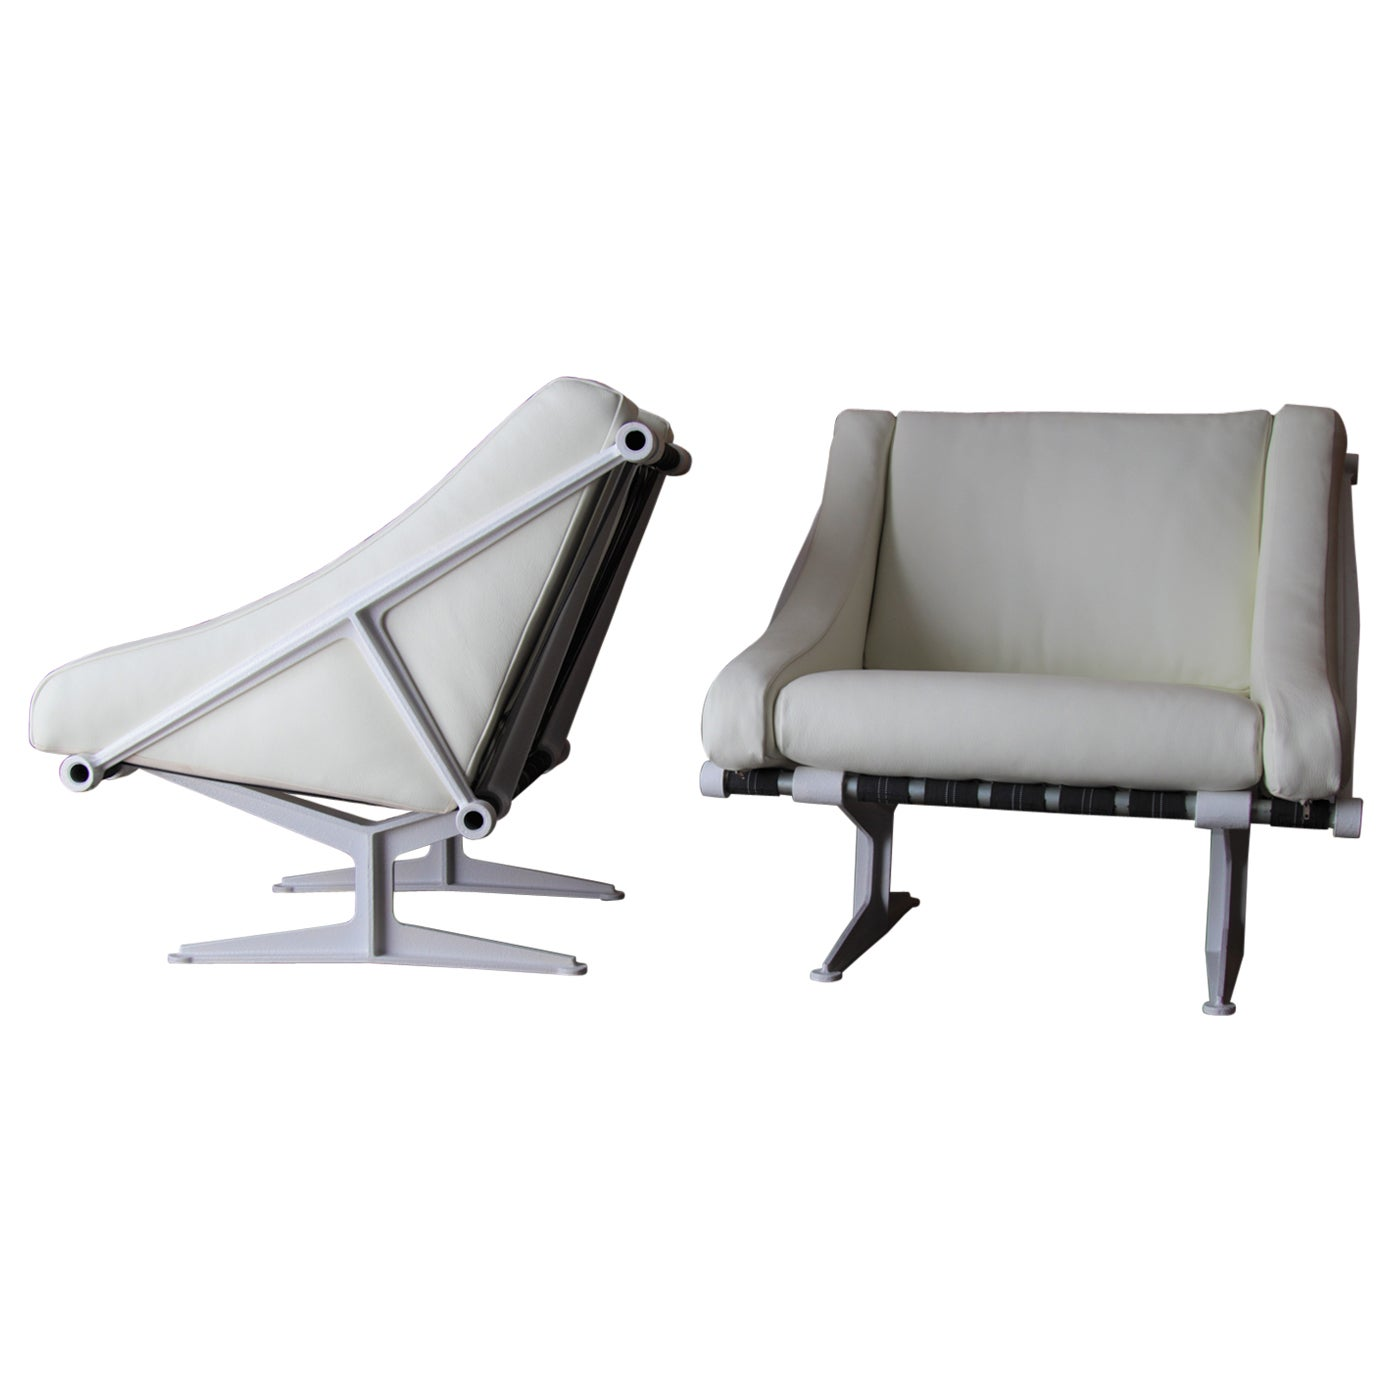 Pair of Modernist Cast Aluminum and Leather Lounge Chairs after Jean Prouvé